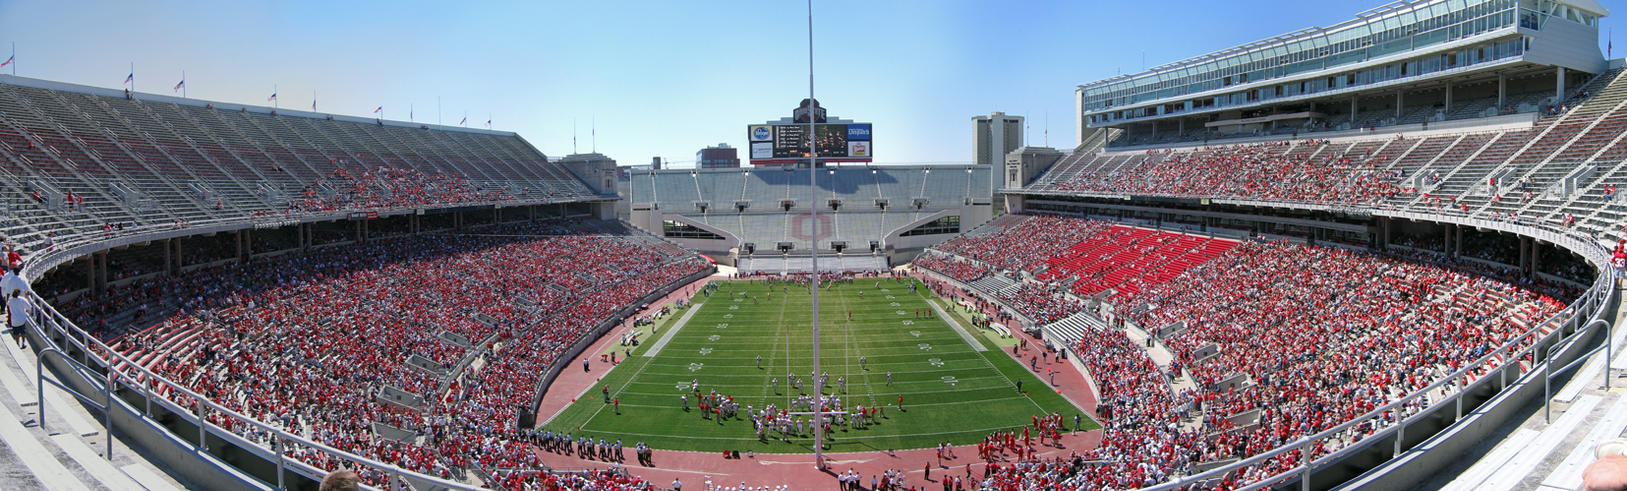 Ohio Stadium Panorama by AreteEirene